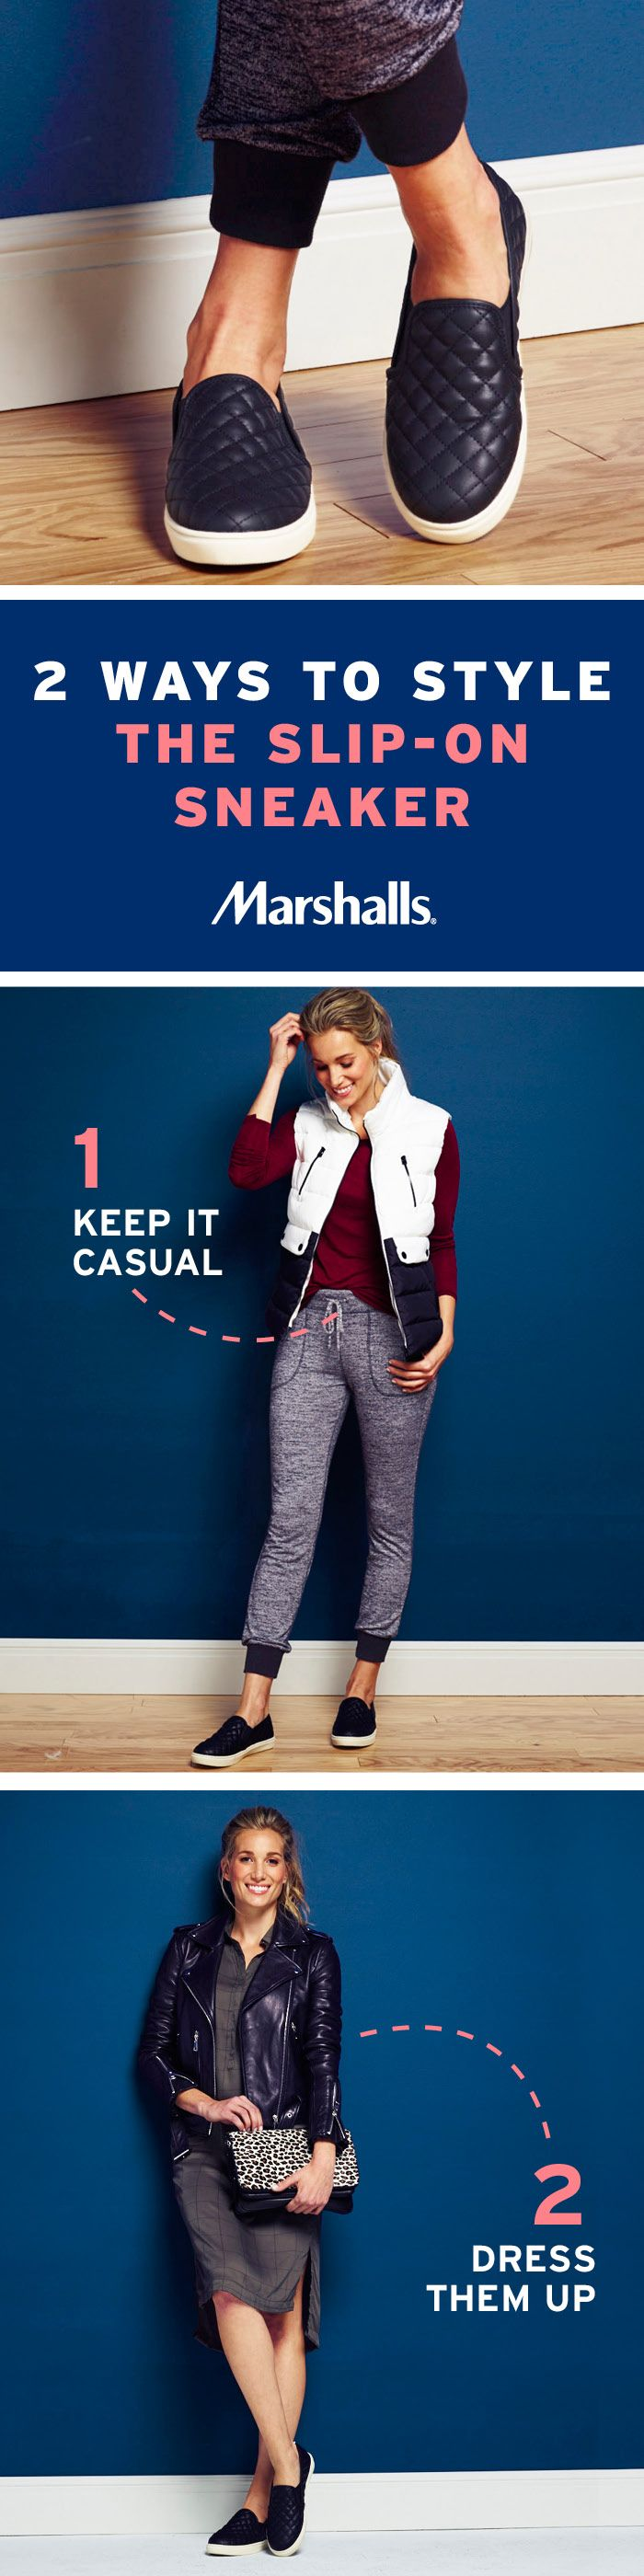 Two ways to style the slip-on sneaker! ONE: Layer a black and white puffer vest over a super-soft cranberry tee. Pair with heathered jogger pants, and tuck your tee in at the front. The tapered leg puts the focus on these quilted leather sneakers. TWO: Dress them up with a printed shirtdress (go for the slit at one side)! Just add a cheetah-print bag and a zippered moto jacket for a little added edge. Visit your Marshalls store and pick up a pair today!